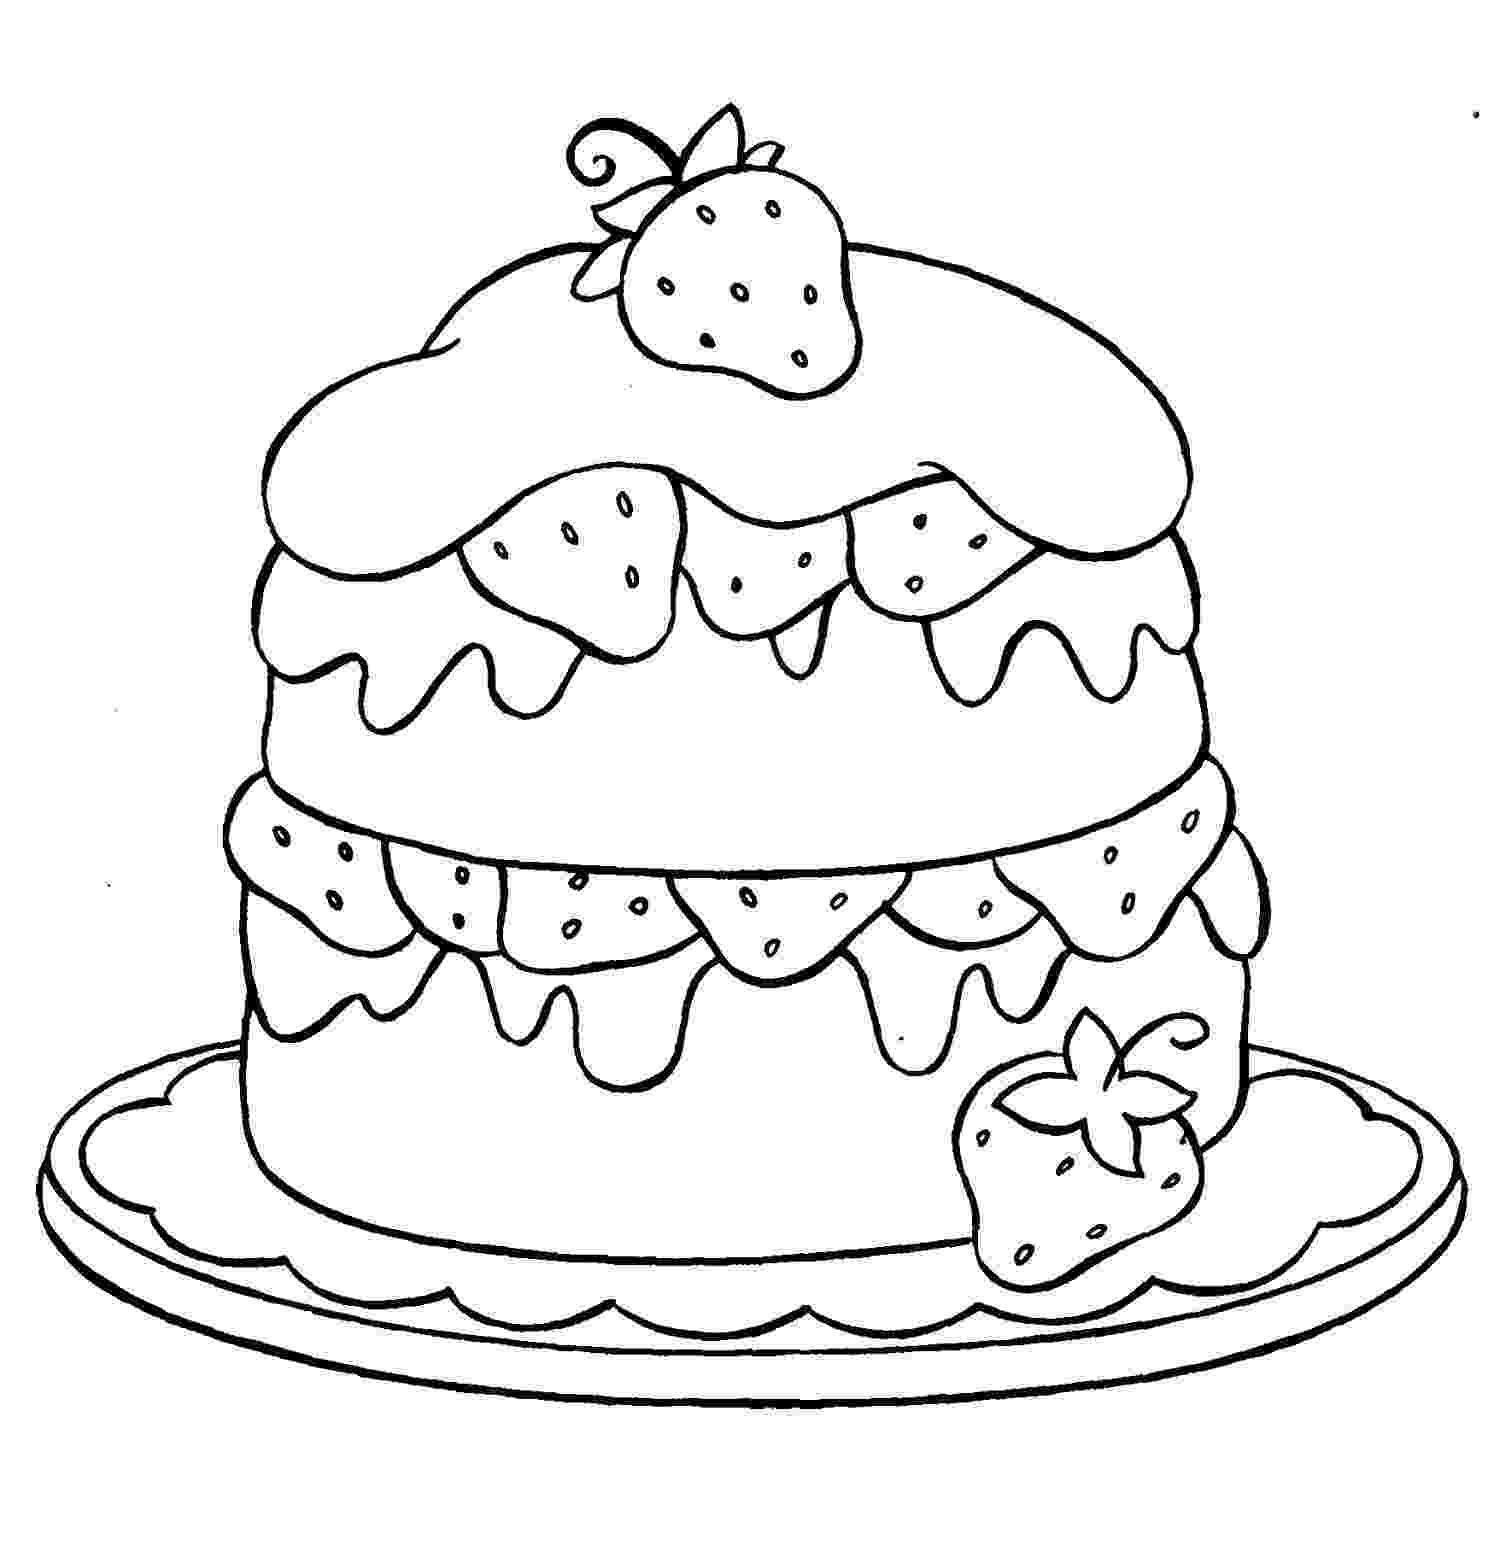 colouring picture of strawberry strawberry coloring pages best coloring pages for kids picture strawberry of colouring